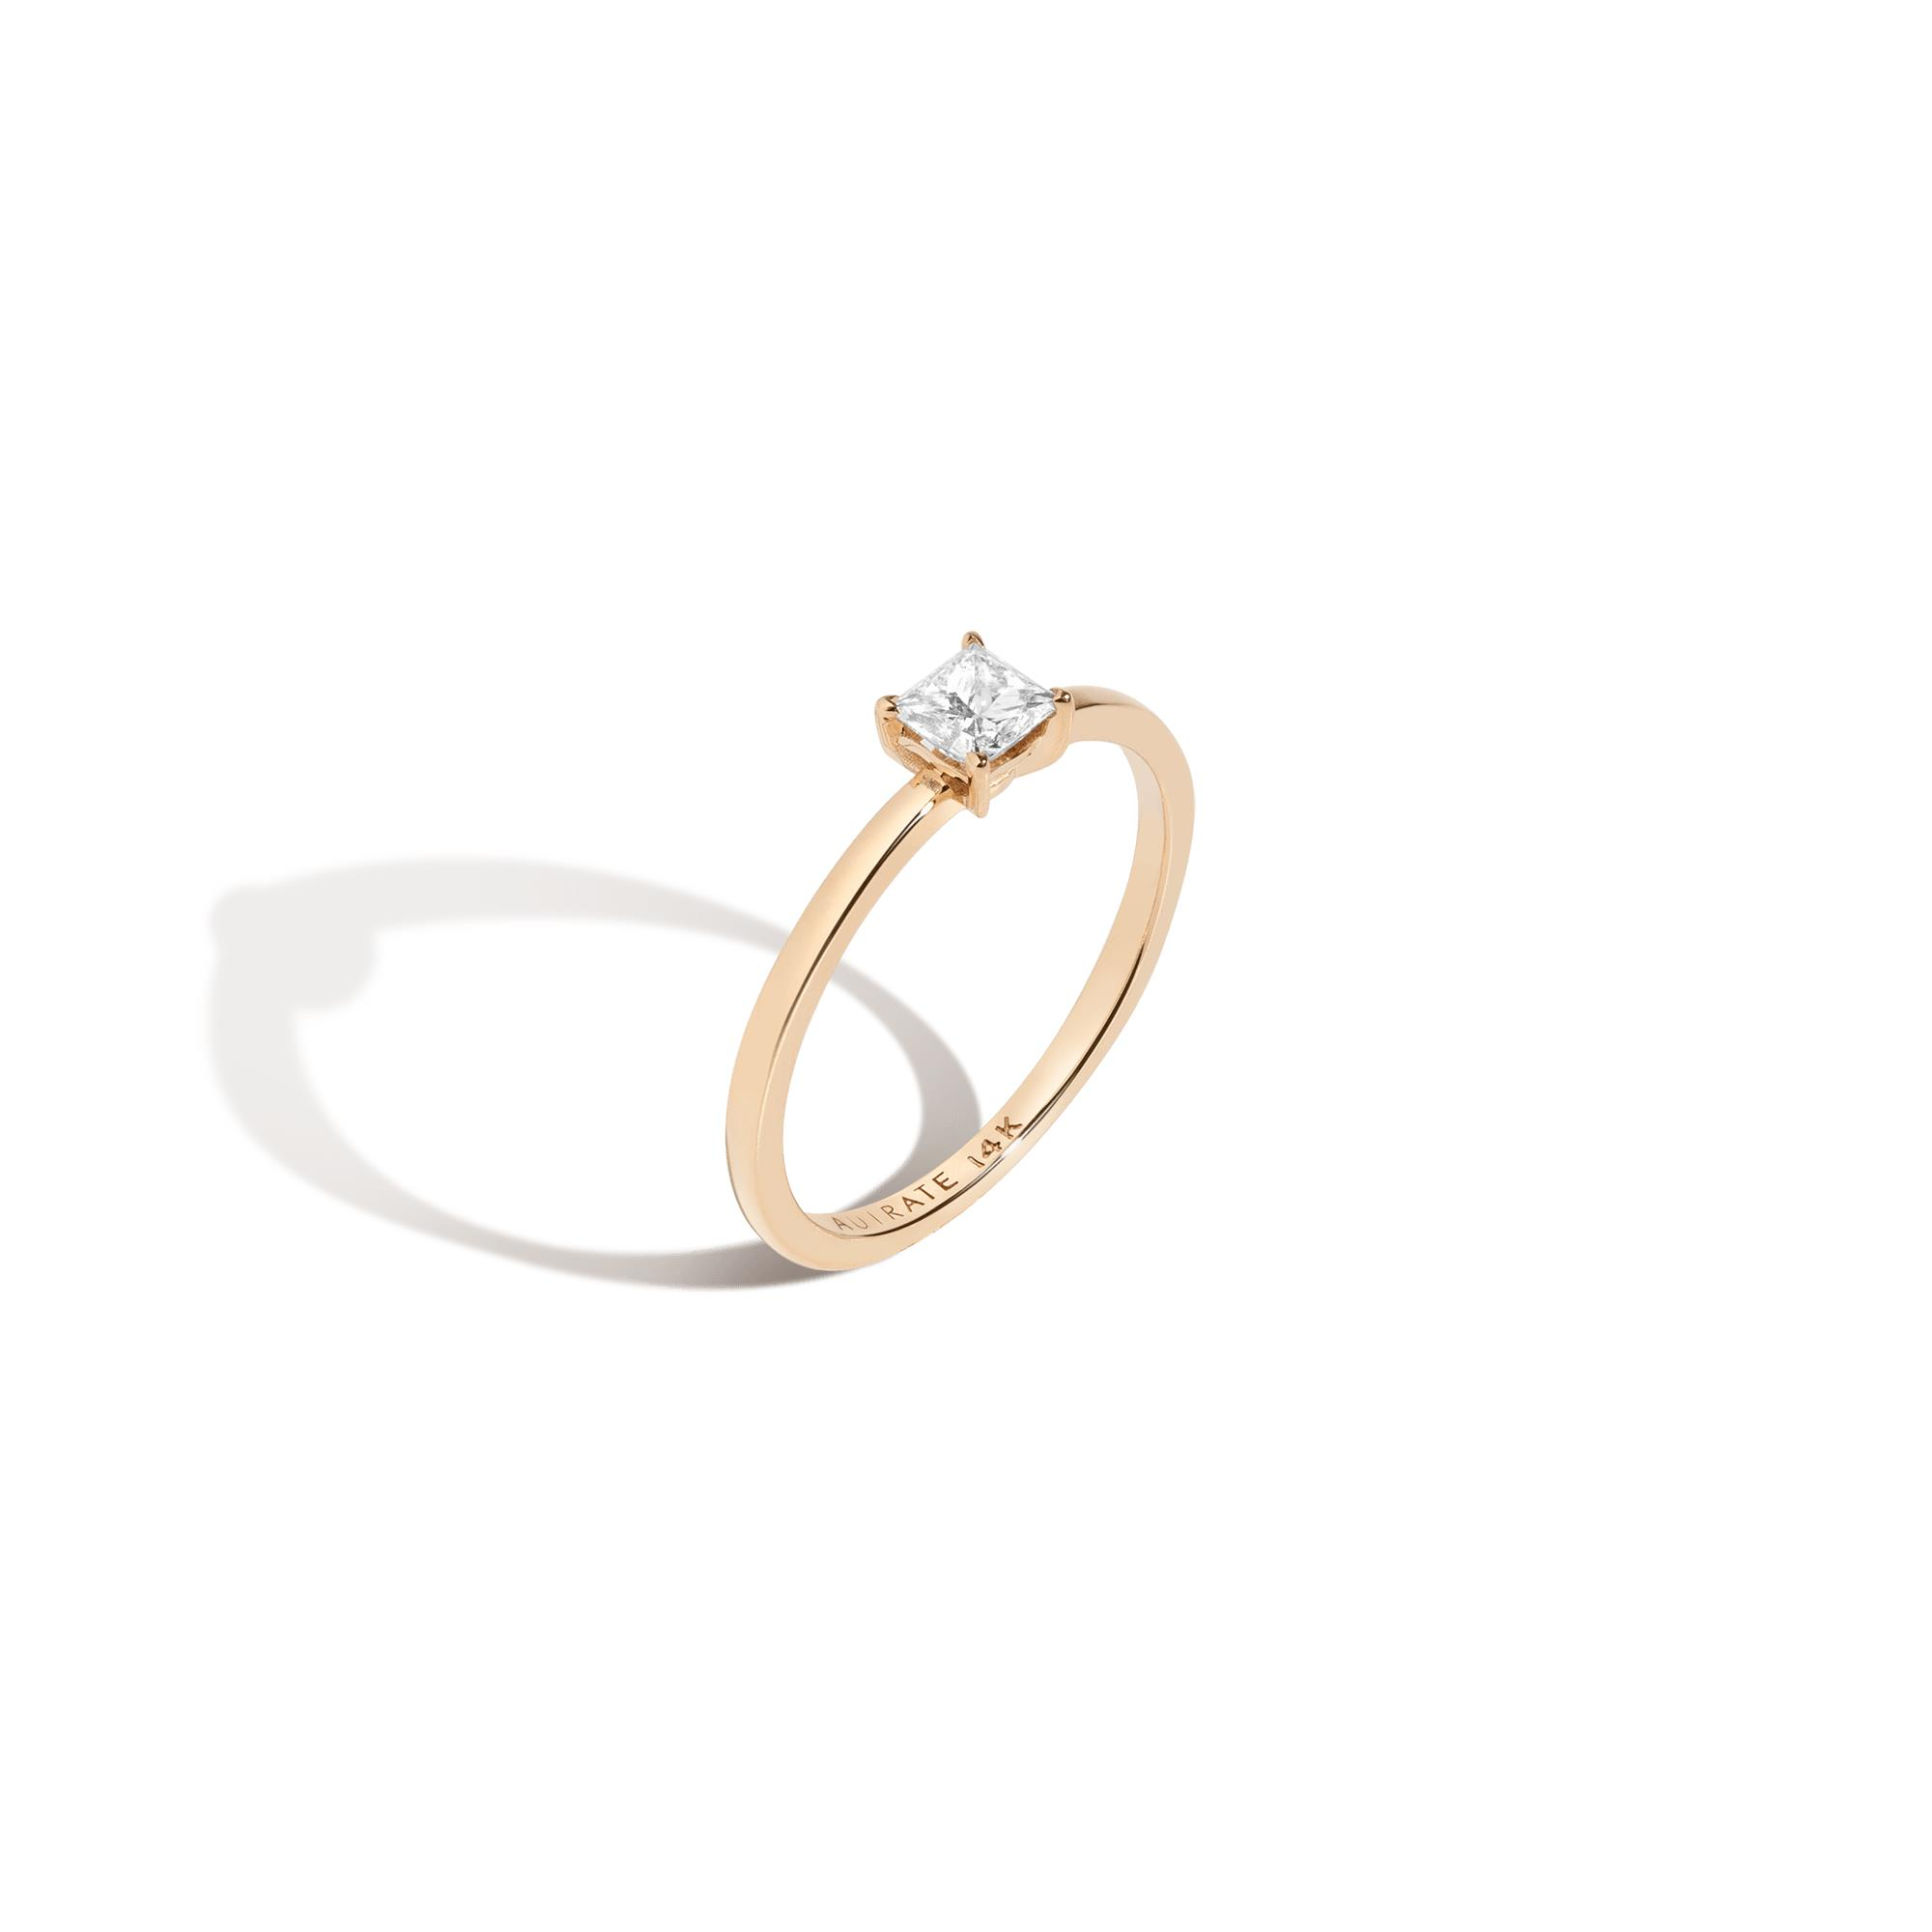 Large Diamond Solitaire Ring